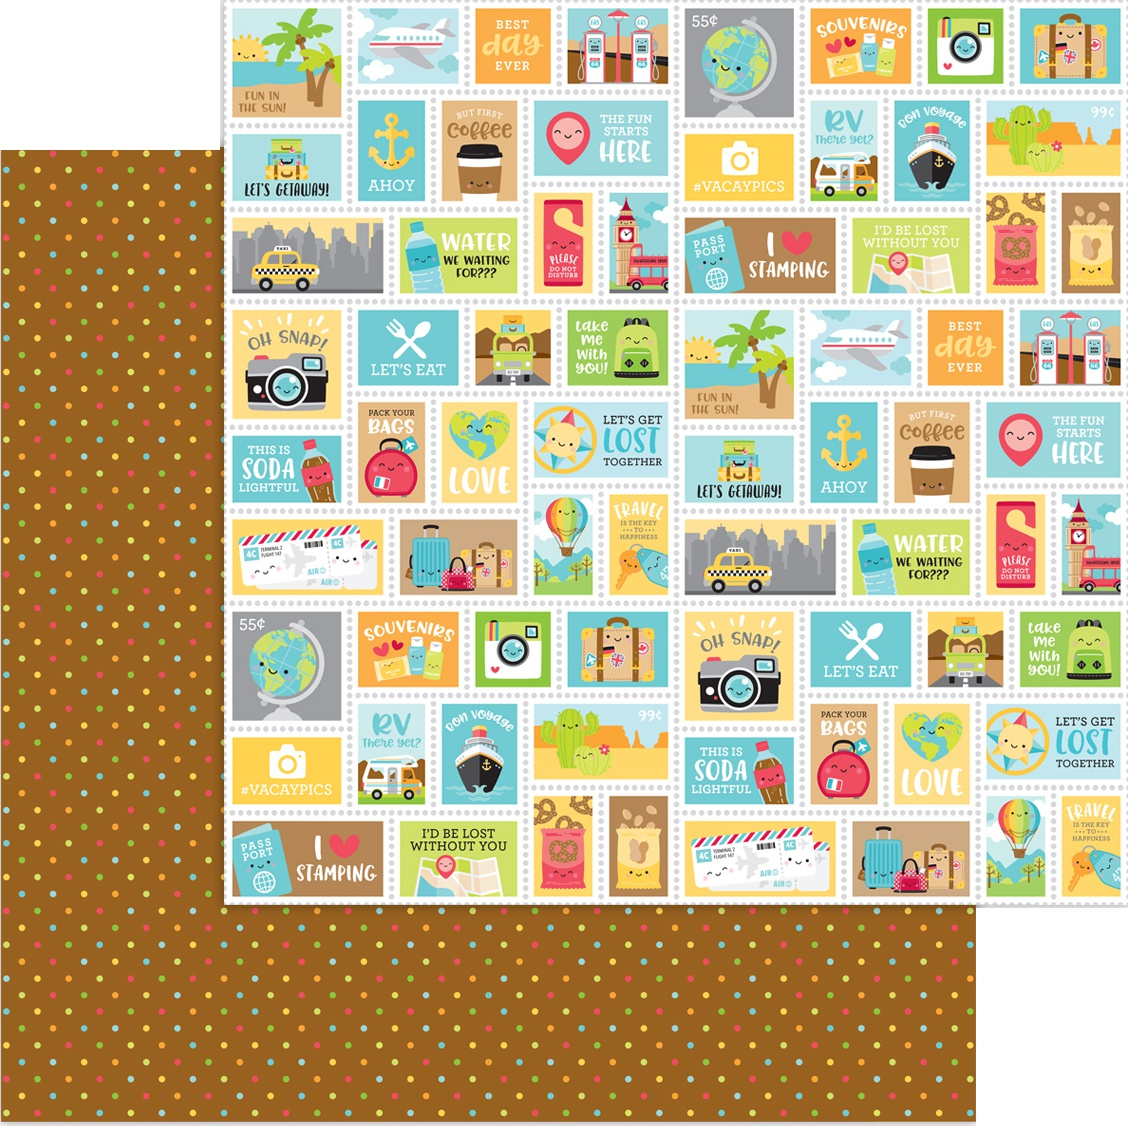 Doodlebug I Heart Travel - Scenic Spot - 12x12 Double-Sided Paper